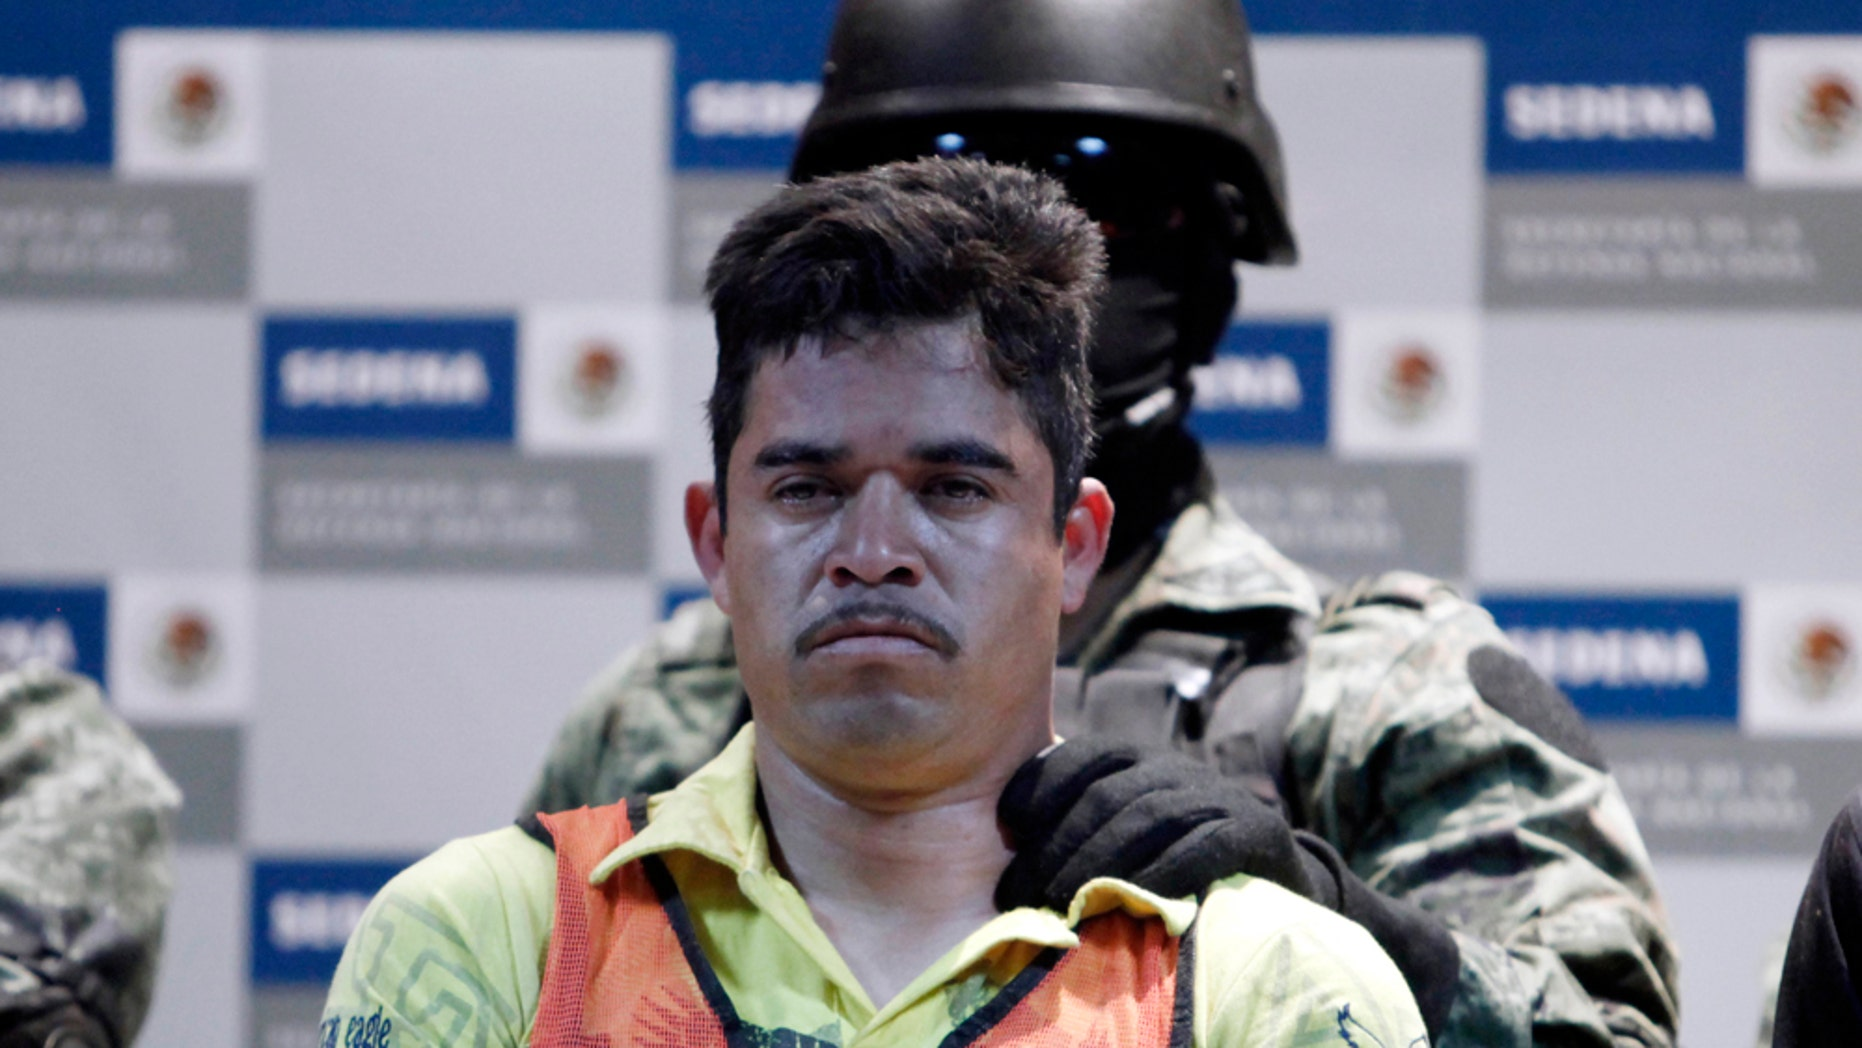 """A soldier escorts Julian Zapata Espinosa, aka """"El Piolin"""", alleged member of the Los Zetas drug cartel and main suspect in the killing of U.S. Immigration and Customs, ICE, agent Jaime Zapata, during a presentation for the media in Mexico City, Wednesday, Feb. 23, 2011. Zapata and fellow agent Victor Avila, were attacked Feb. 15 when traveling along a highway in Mexico's San Luis Potosi state. Avila survived the attack. (AP Photo/Miguel Tovar)"""